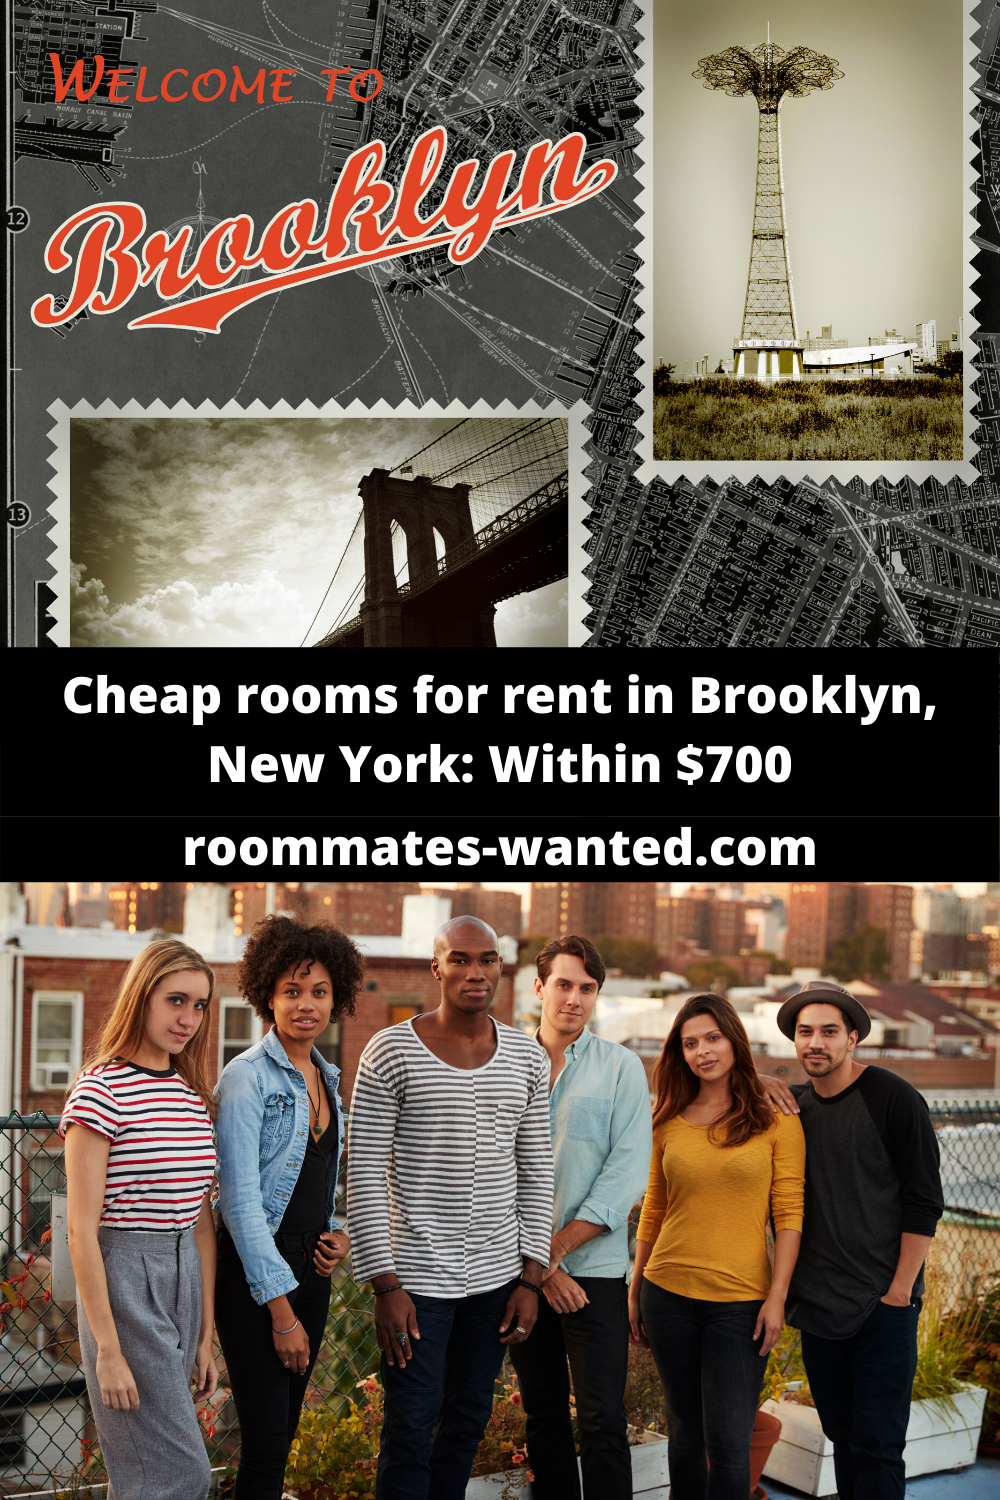 Cheap Rooms For Rent In Brooklyn New York Within 700 Rooms For Rent Cheap Rooms Rent